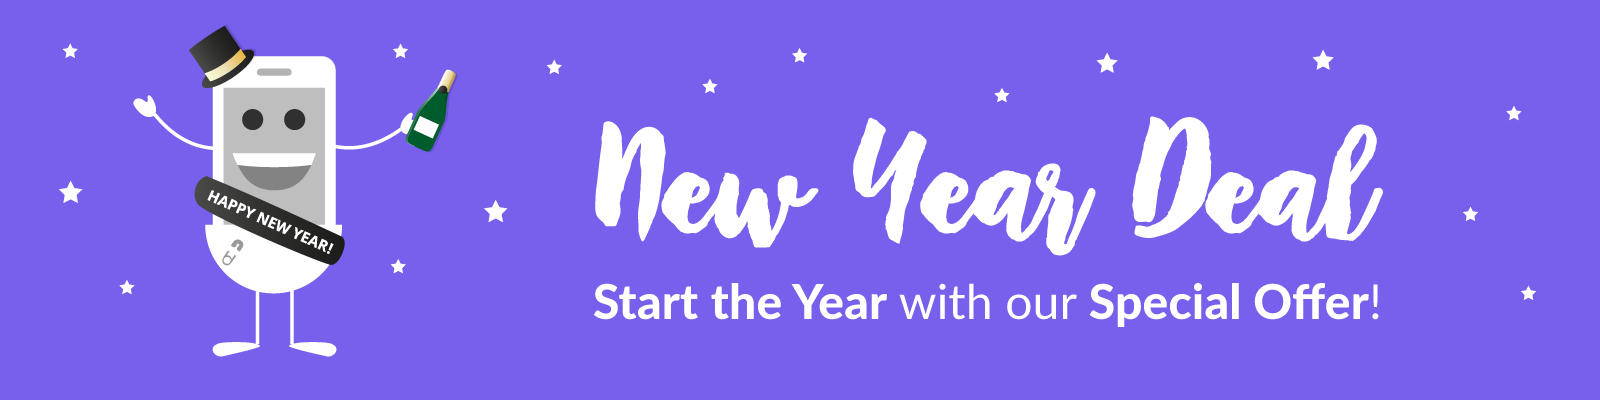 New Year Deal Banner